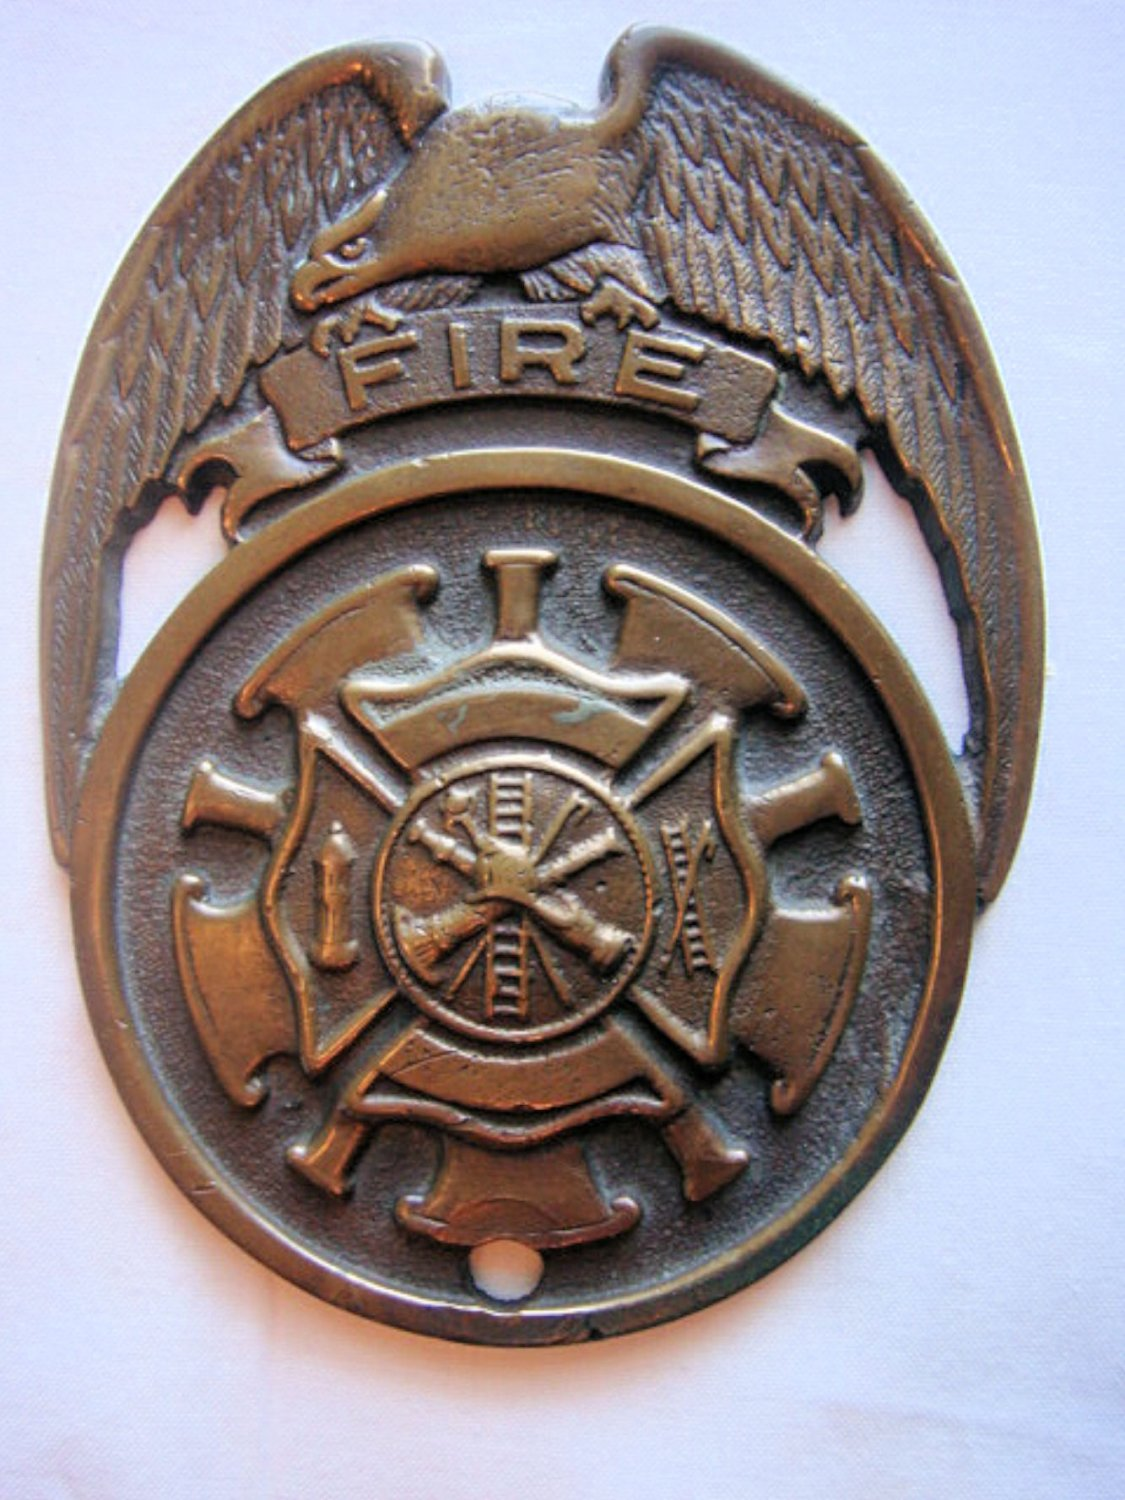 Fire Department Solid Brass Plaque